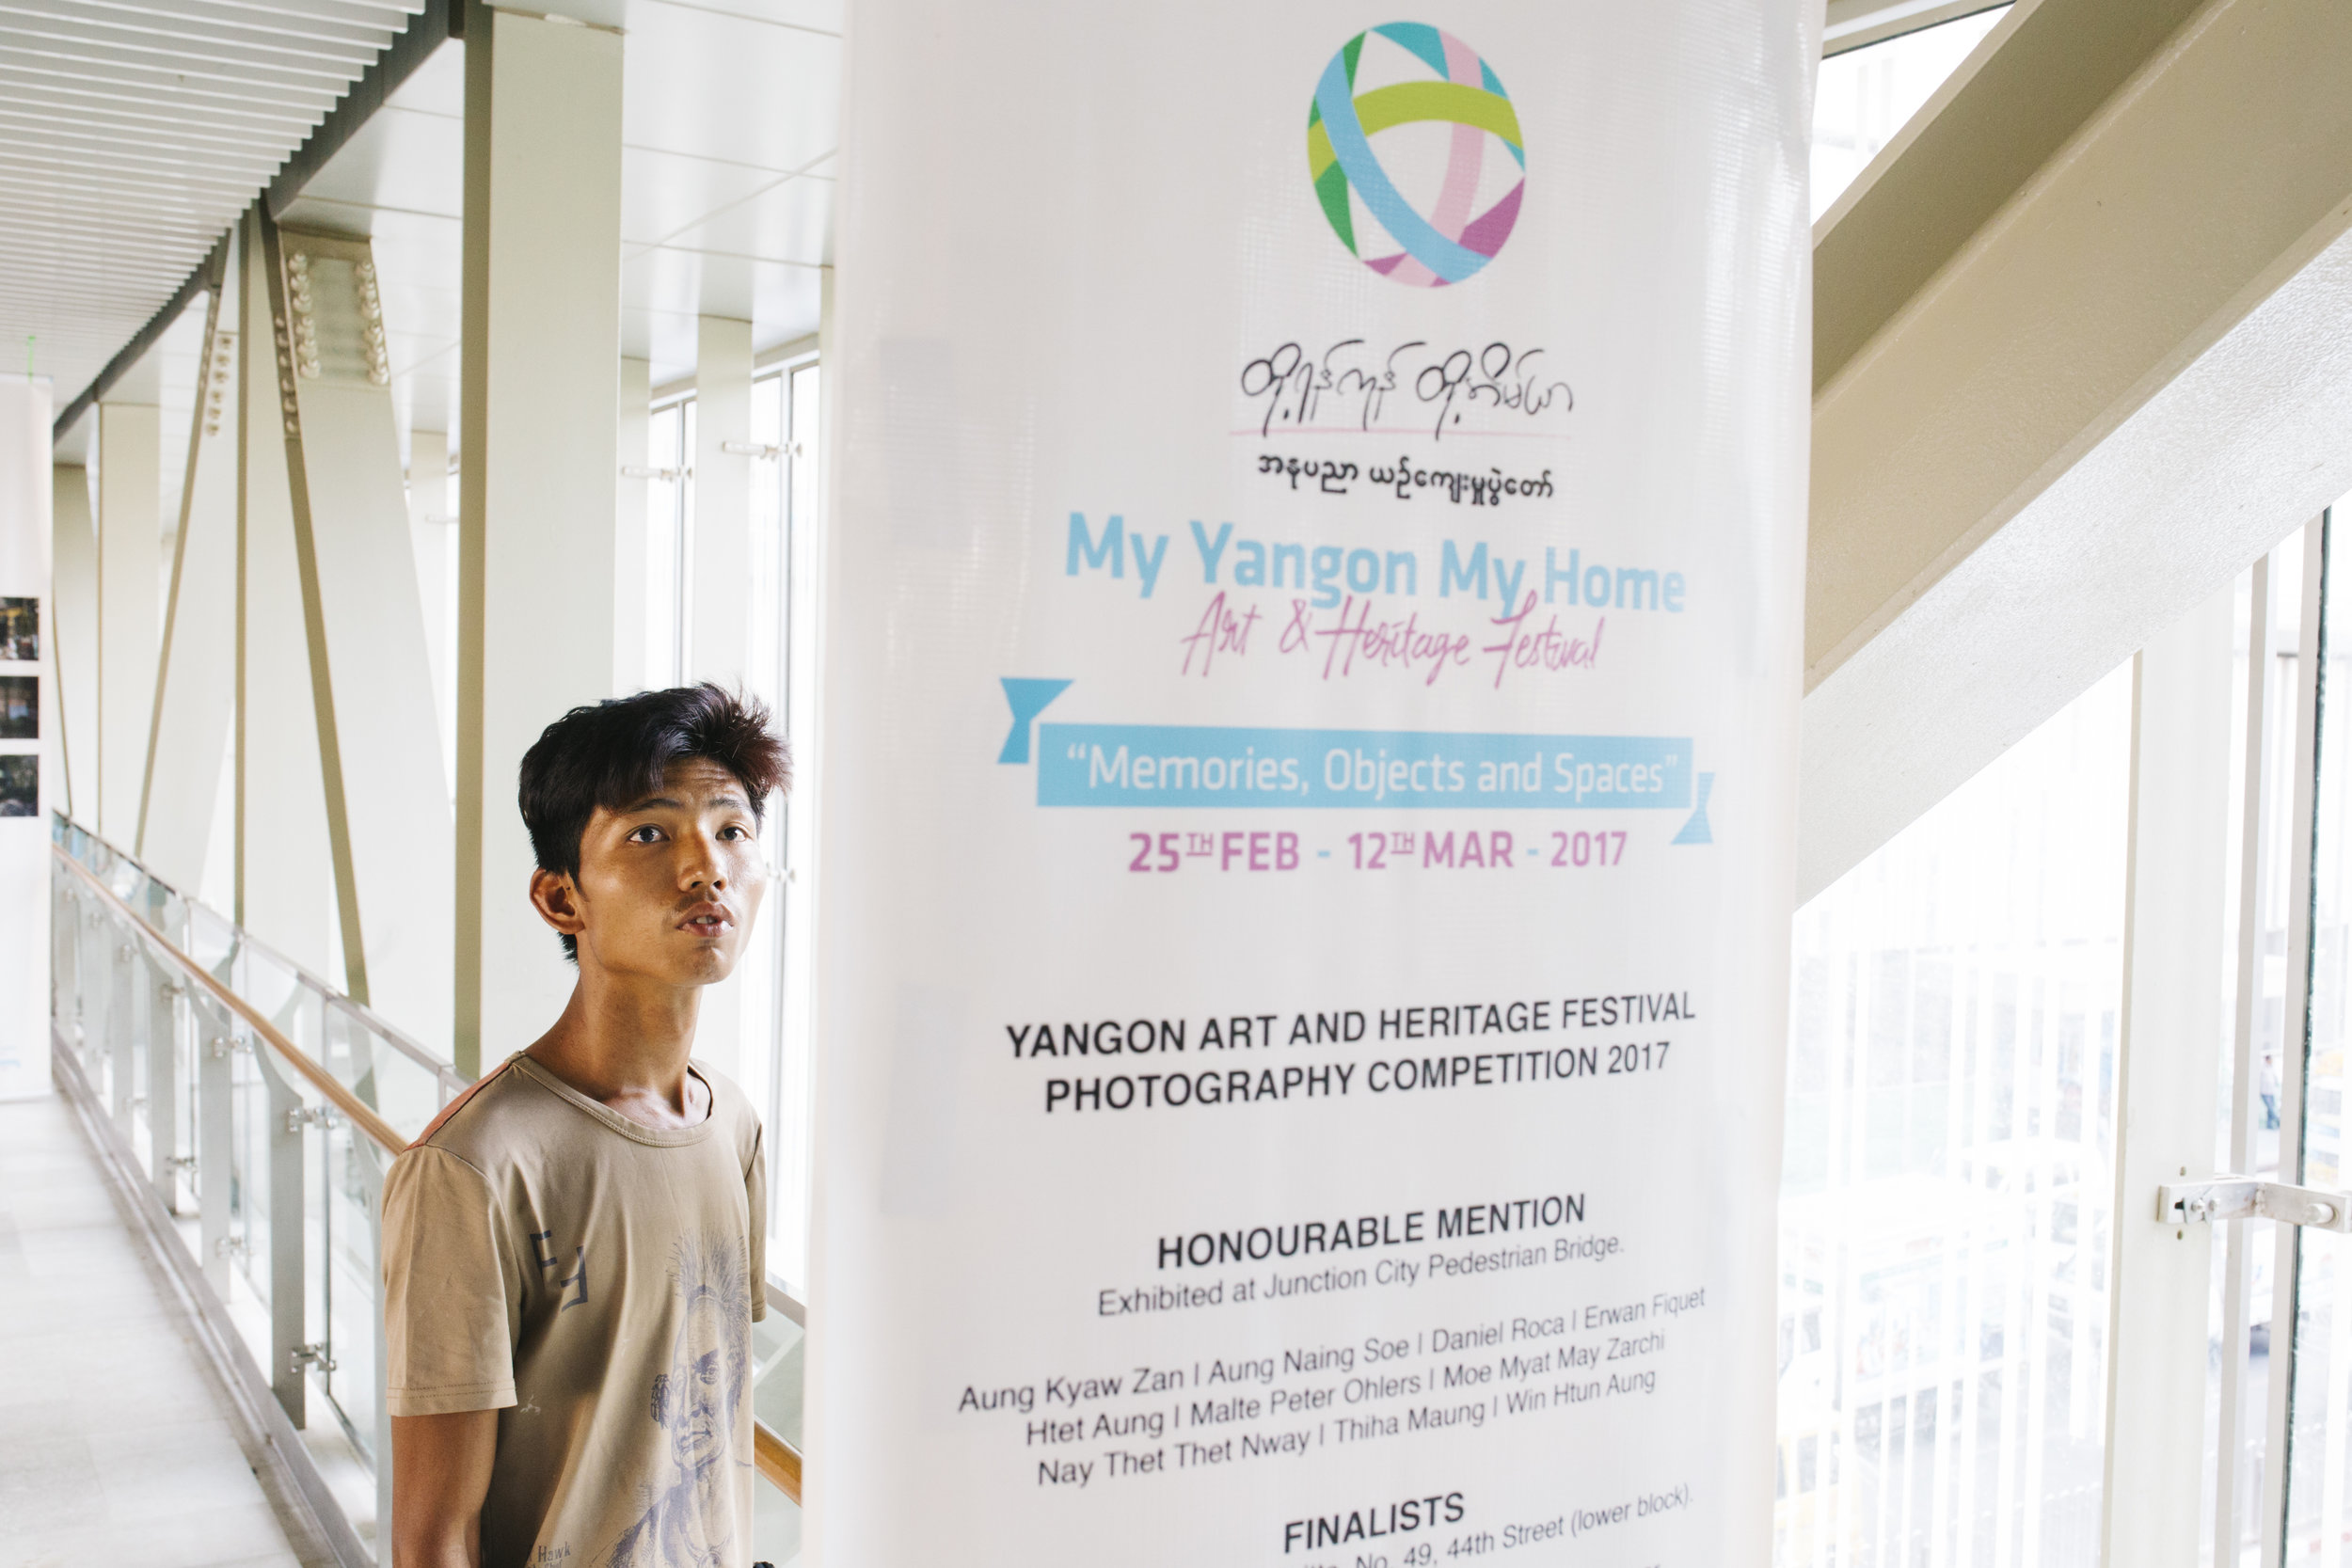 Yangon Art and Heritage Festival Photography Competition 2017 - Coordinated by Myanmar DeittaThe YAHF Photography Competition returns to this year's festival! Throughout December and January photographers were encouraged to send us their images of Yangon, which represent this year's theme of 'Memories, Objects and Spaces'.Each entry consisted a set of three photographs and in total we received more than 400 images from photographers of all backgrounds, ages and nationalities. The images included photographs by talented Myanmar photographers as well as entries from places as far as Japan, Romania, Germany and Canada.